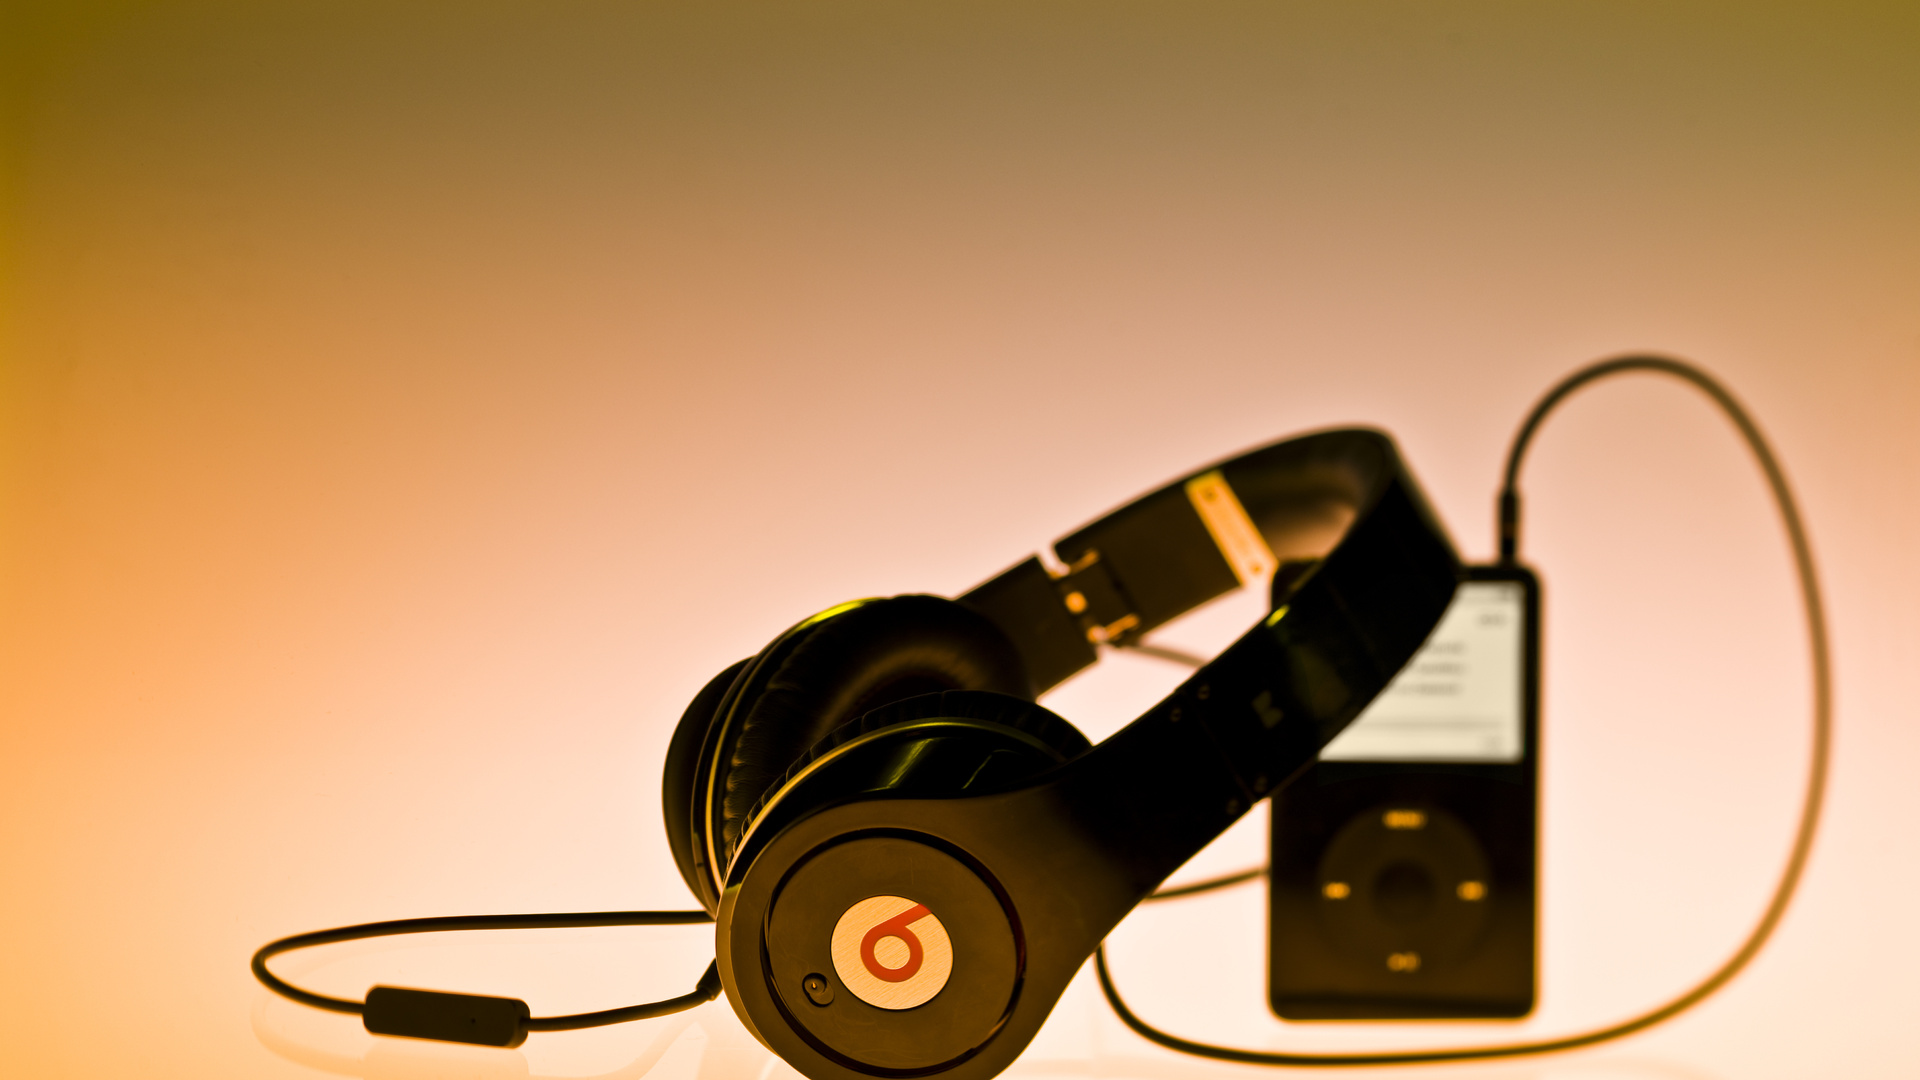 Music 4k Wallpapers For Your Desktop Or Mobile Screen Free And